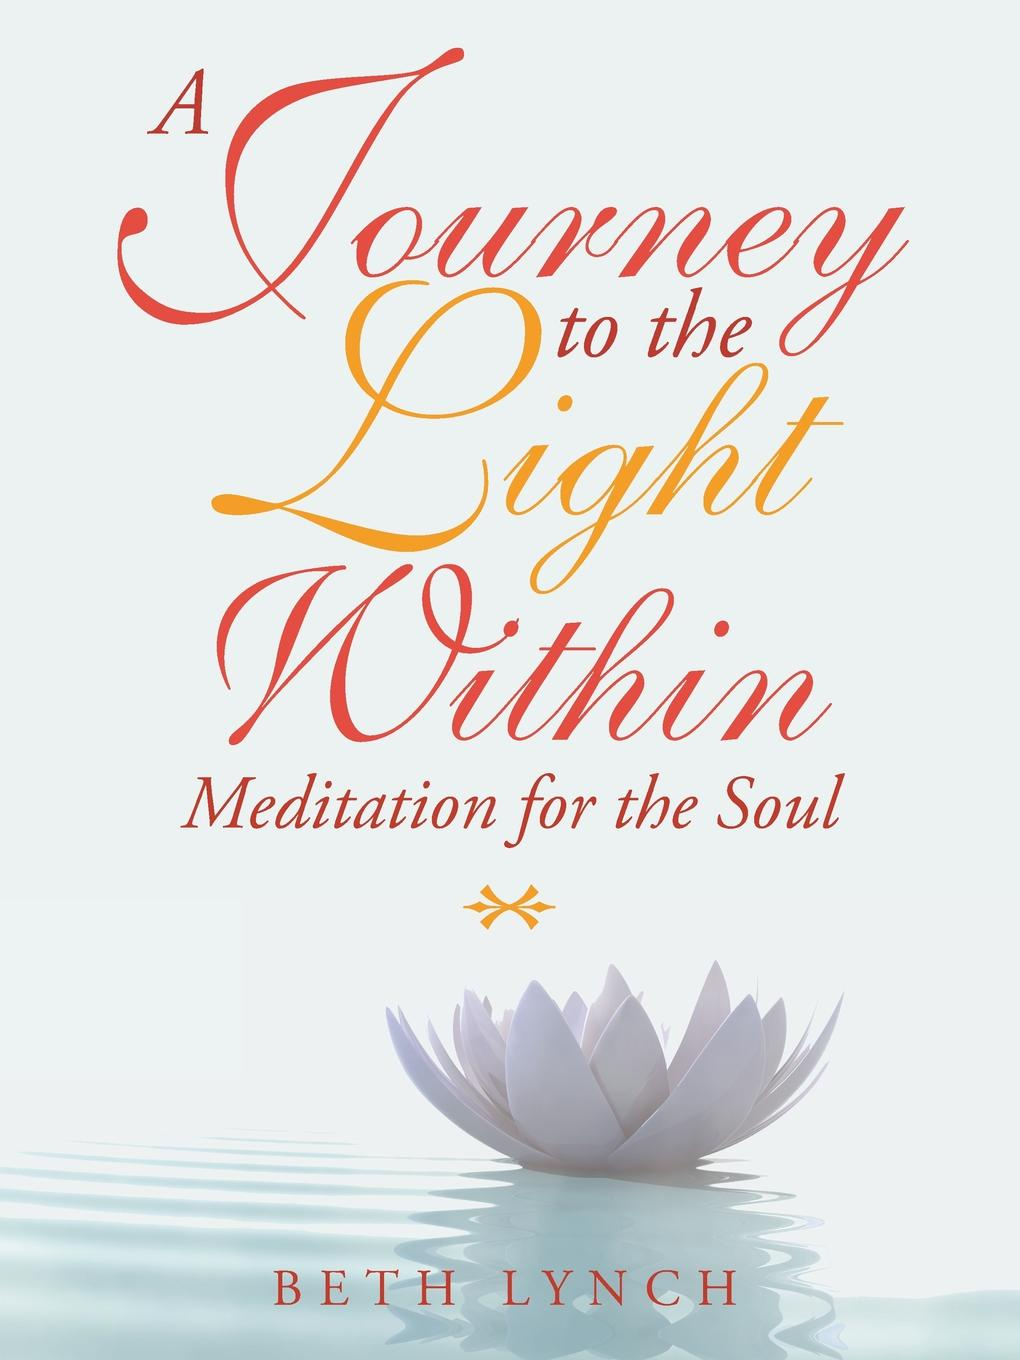 Beth Lynch A Journey to the Light Within. Meditation for the Soul amy lyman the trustworthy leader leveraging the power of trust to transform your organization